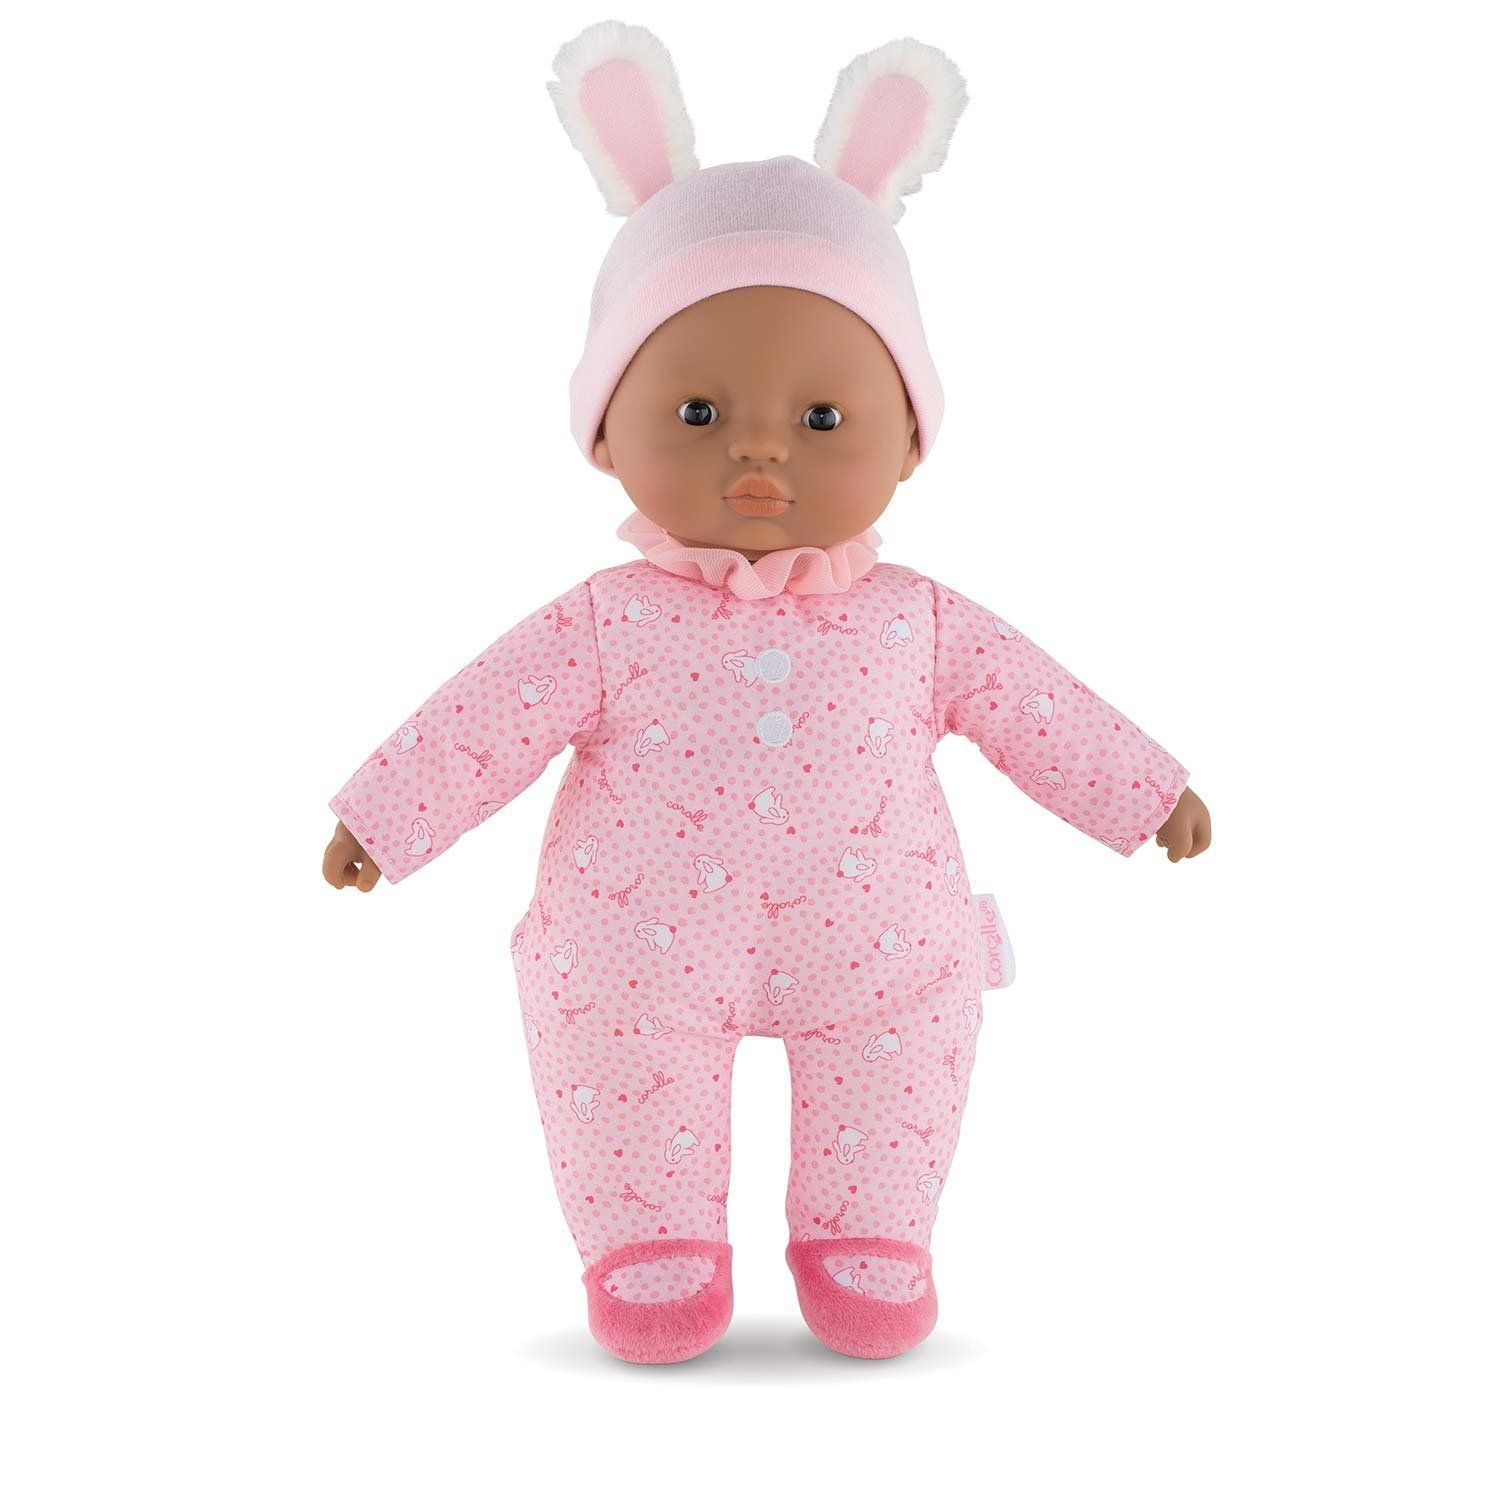 Sweet Heart Toffee Pink 12 inch Play Doll by Corolle (FRH59) by Corolle